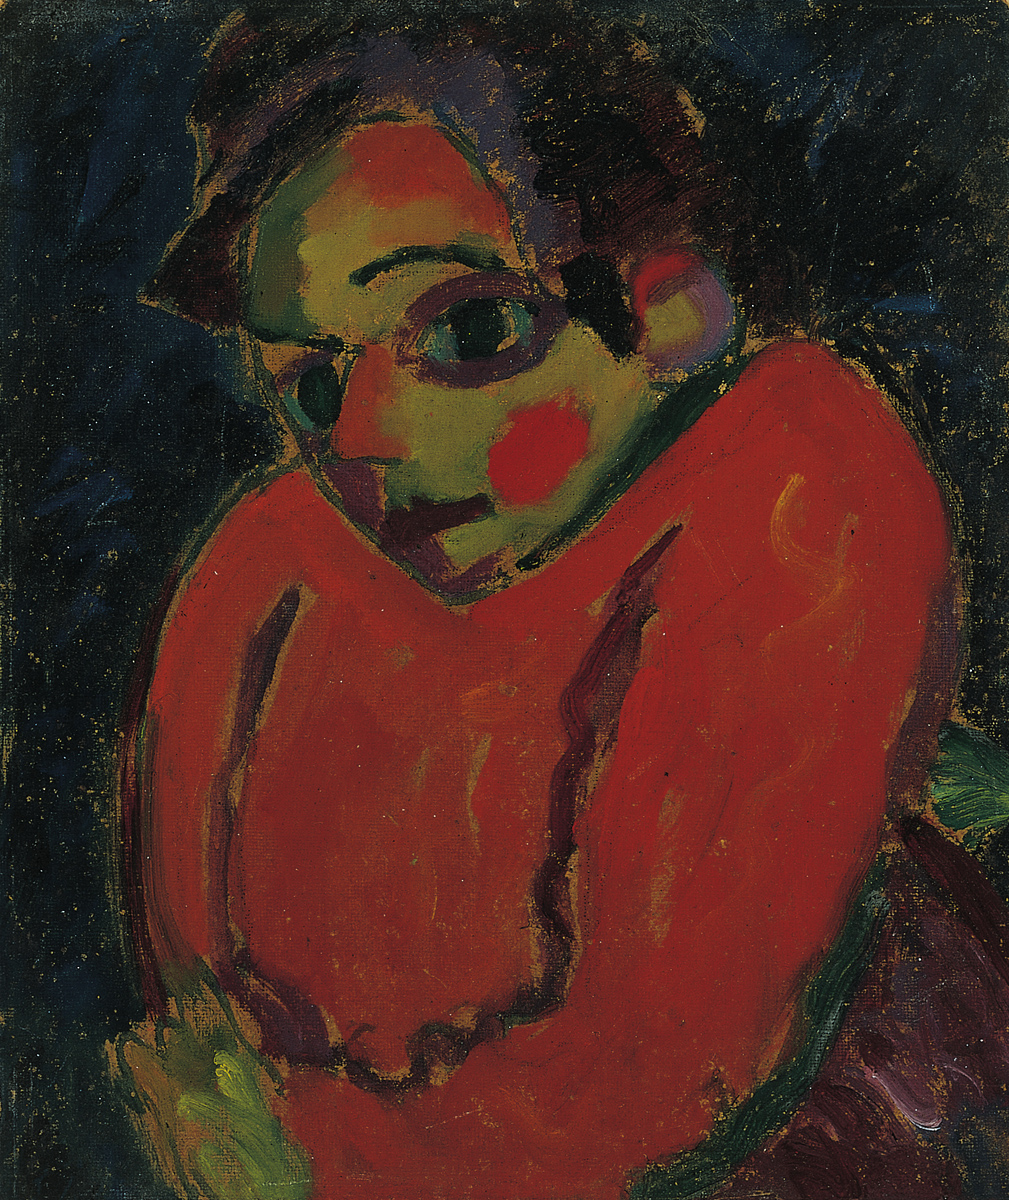 jawlensky_the hunchback